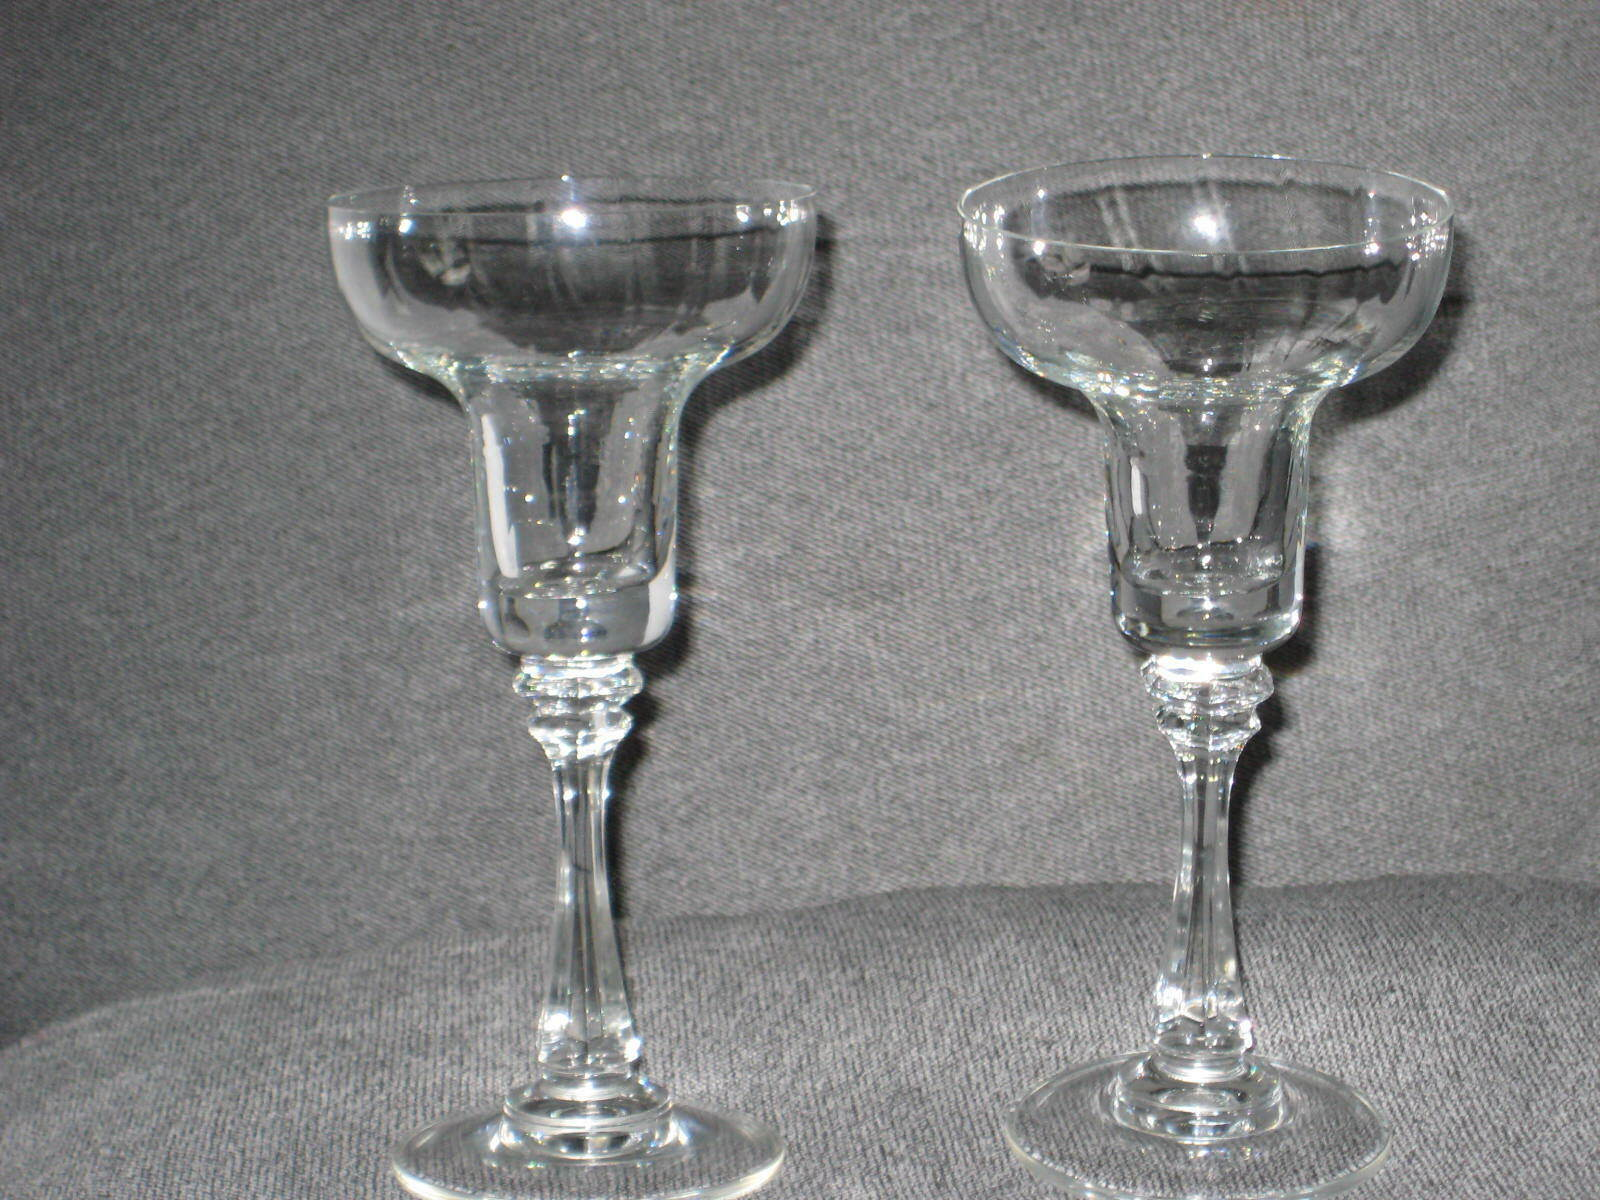 2 CRYSTAL CANDLE HOLDERS VINTAGE MID 50s WEDDING GIFT 6.5  HIGH MINT